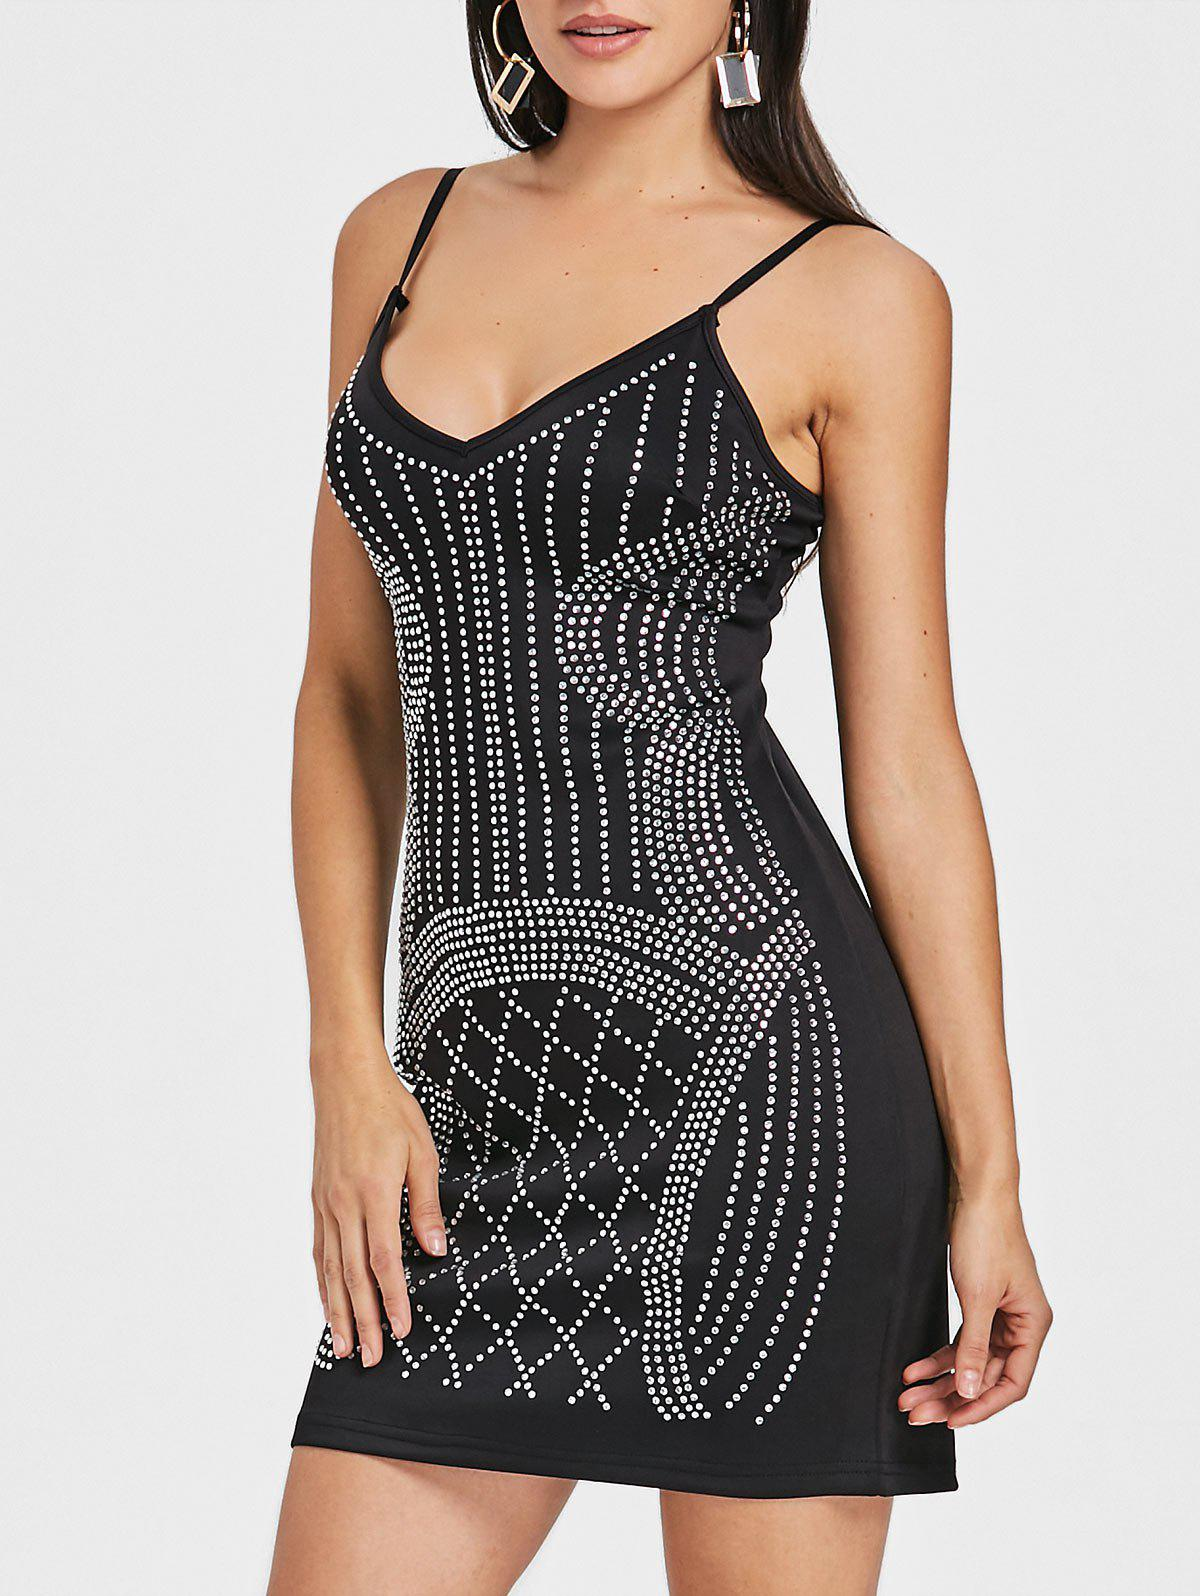 Rhinestone Spaghetti Strap Mini Dress - BLACK L